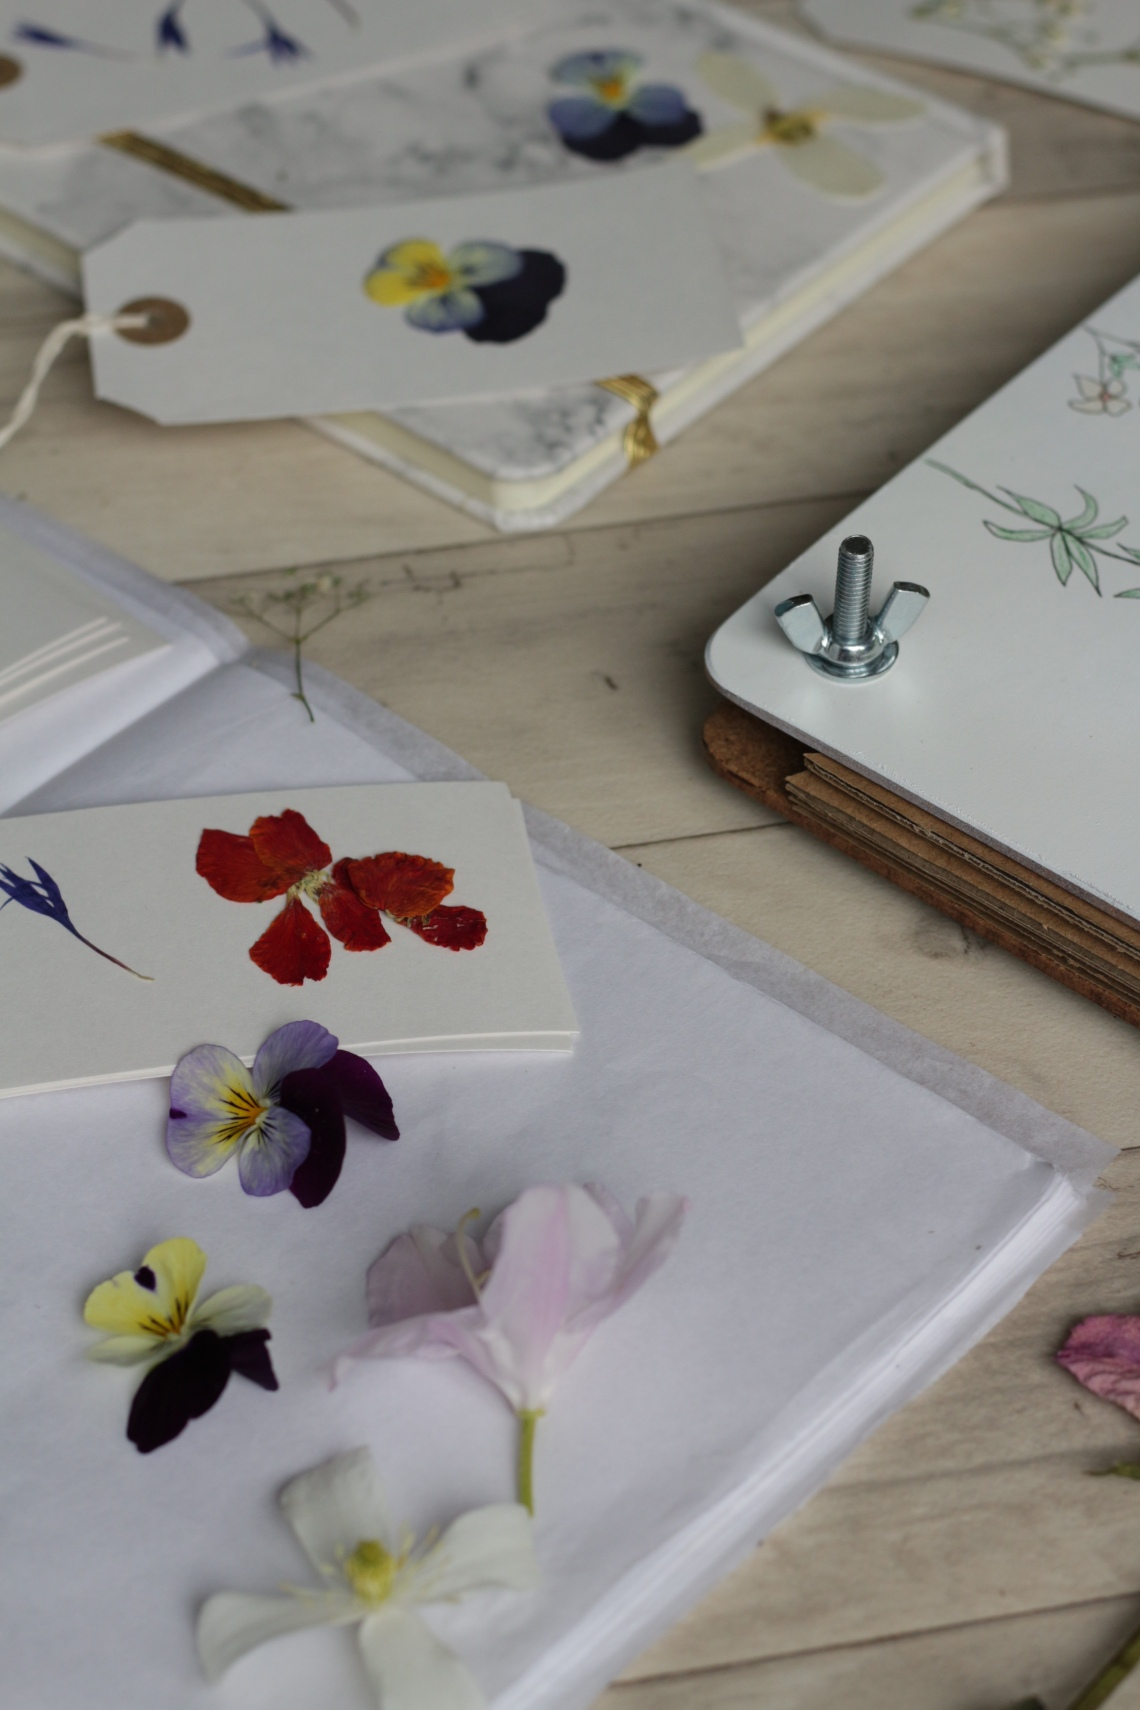 Dried flowers - Making a flower press | Ink Sugar Spice blog